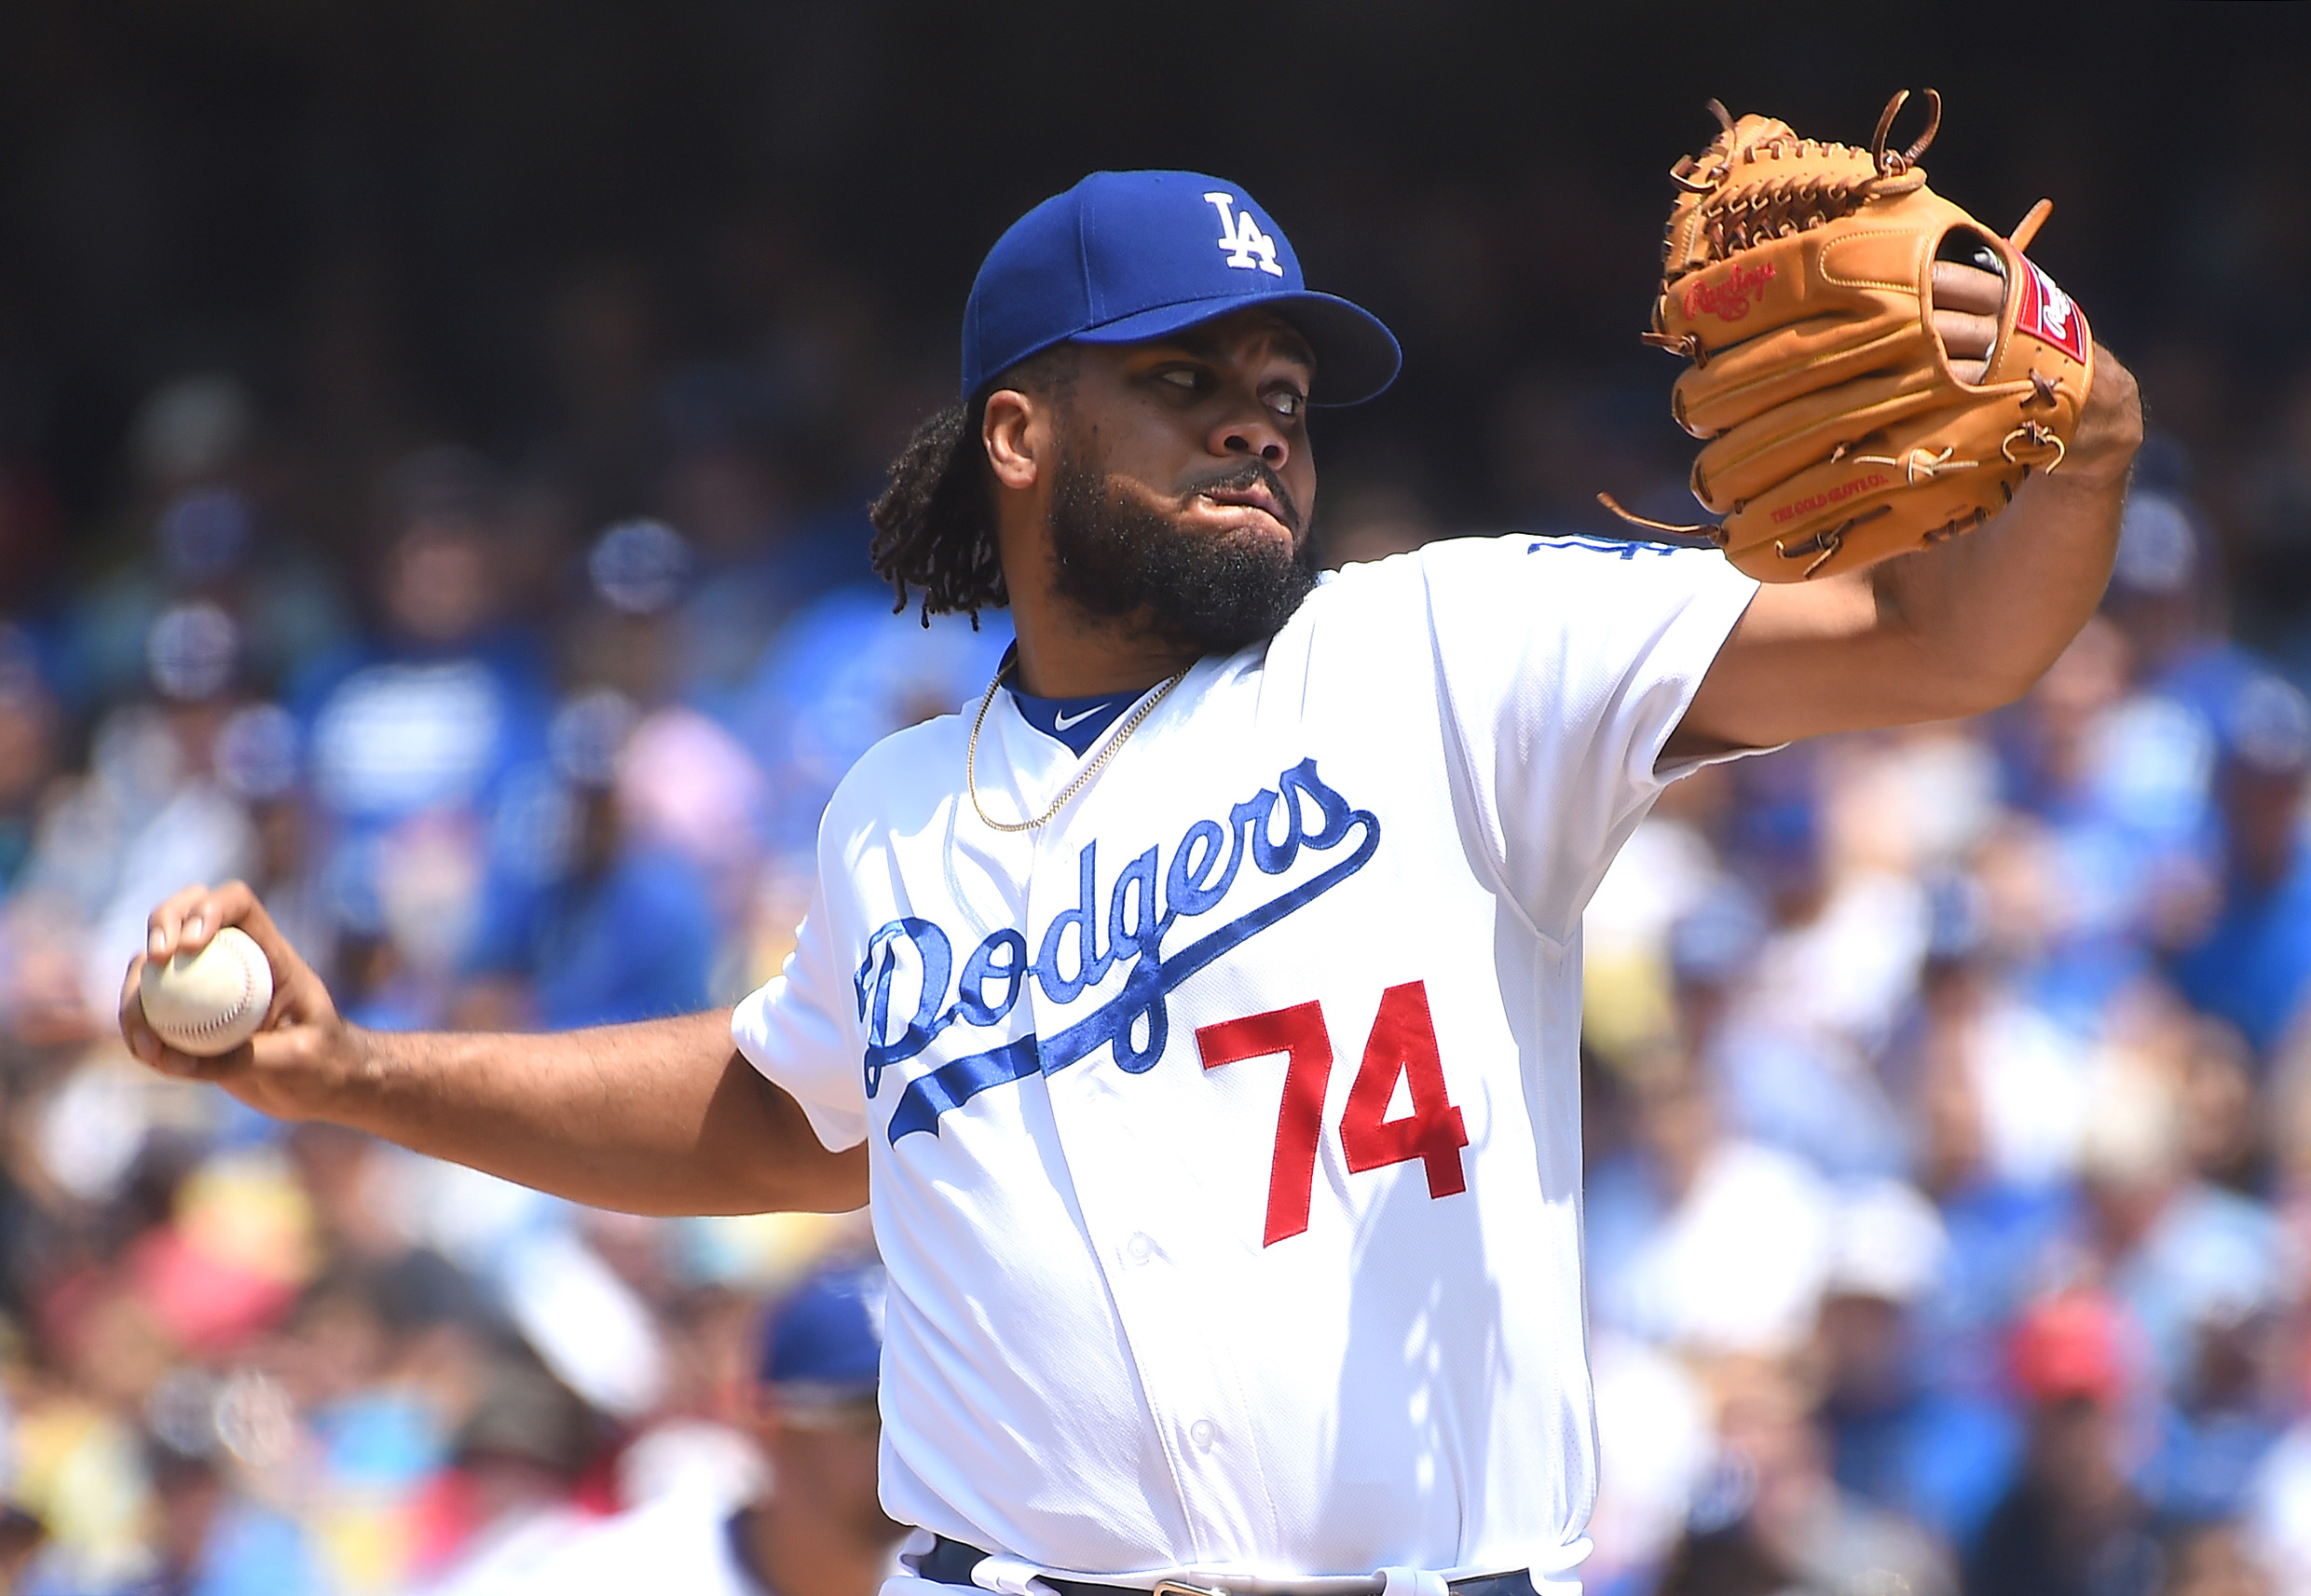 10095771-mlb-washington-nationals-at-los-angeles-dodgers